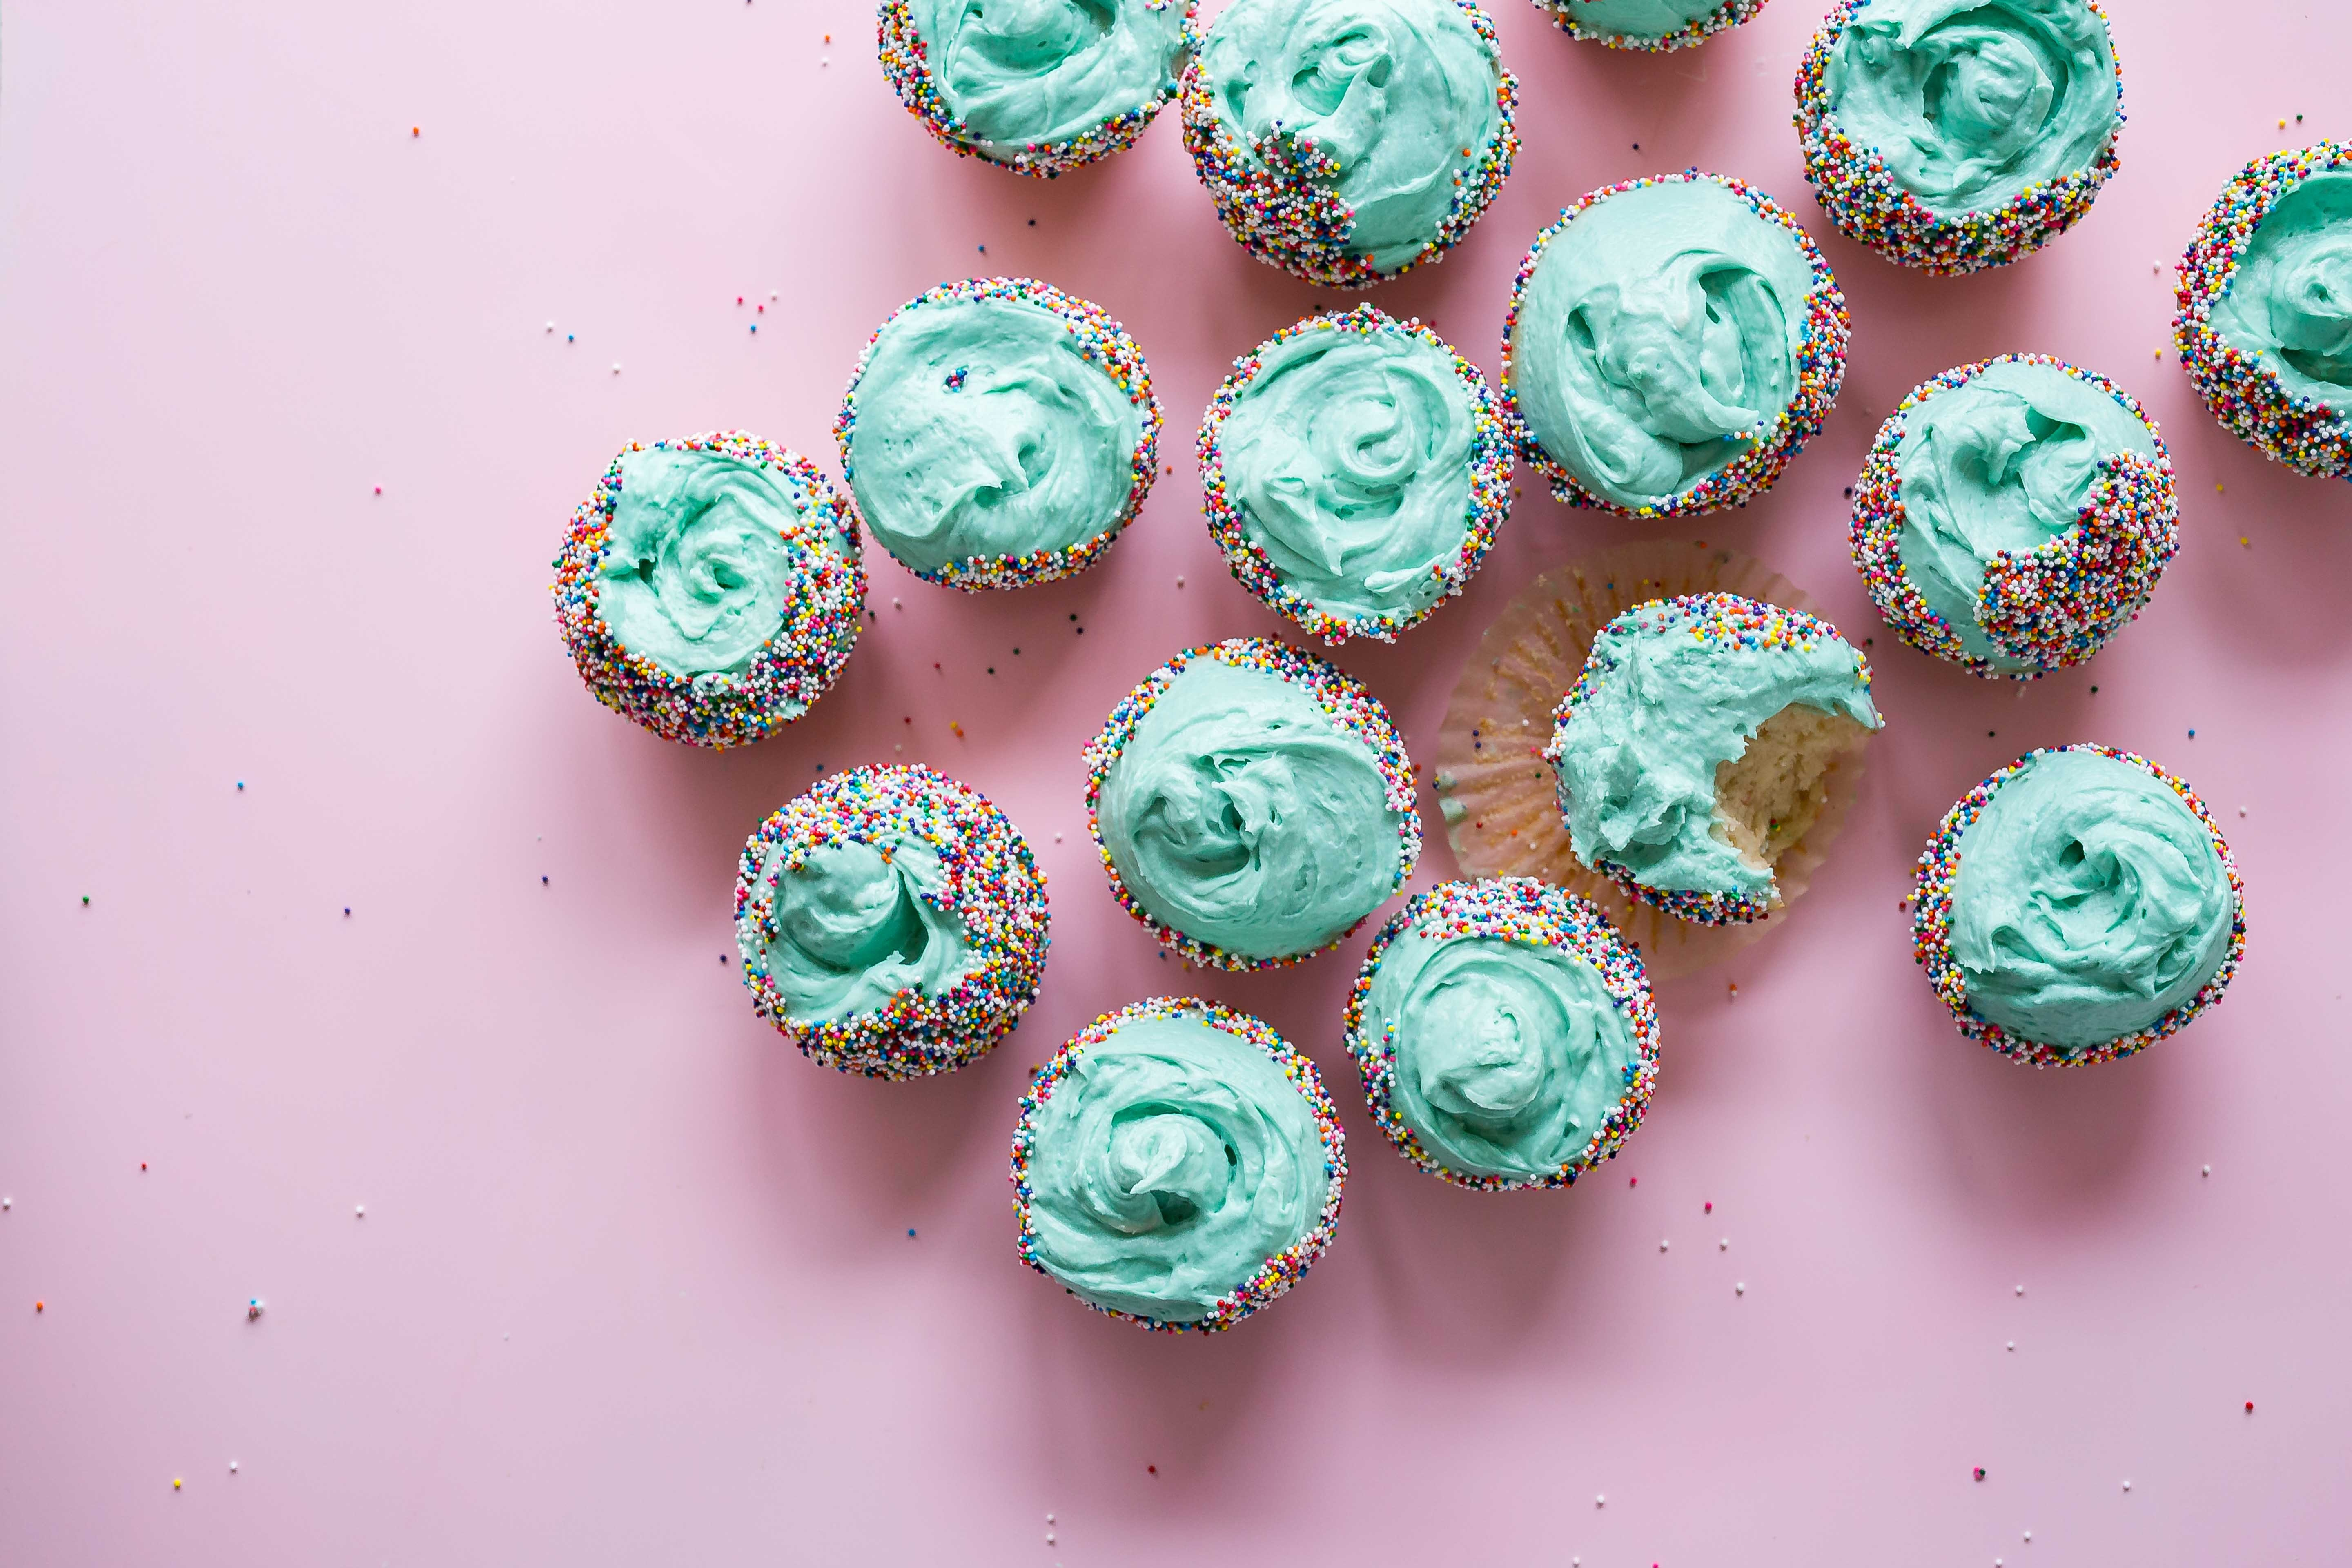 vibrant teal cupcakes, one with a bite out of it, on a soft pink background